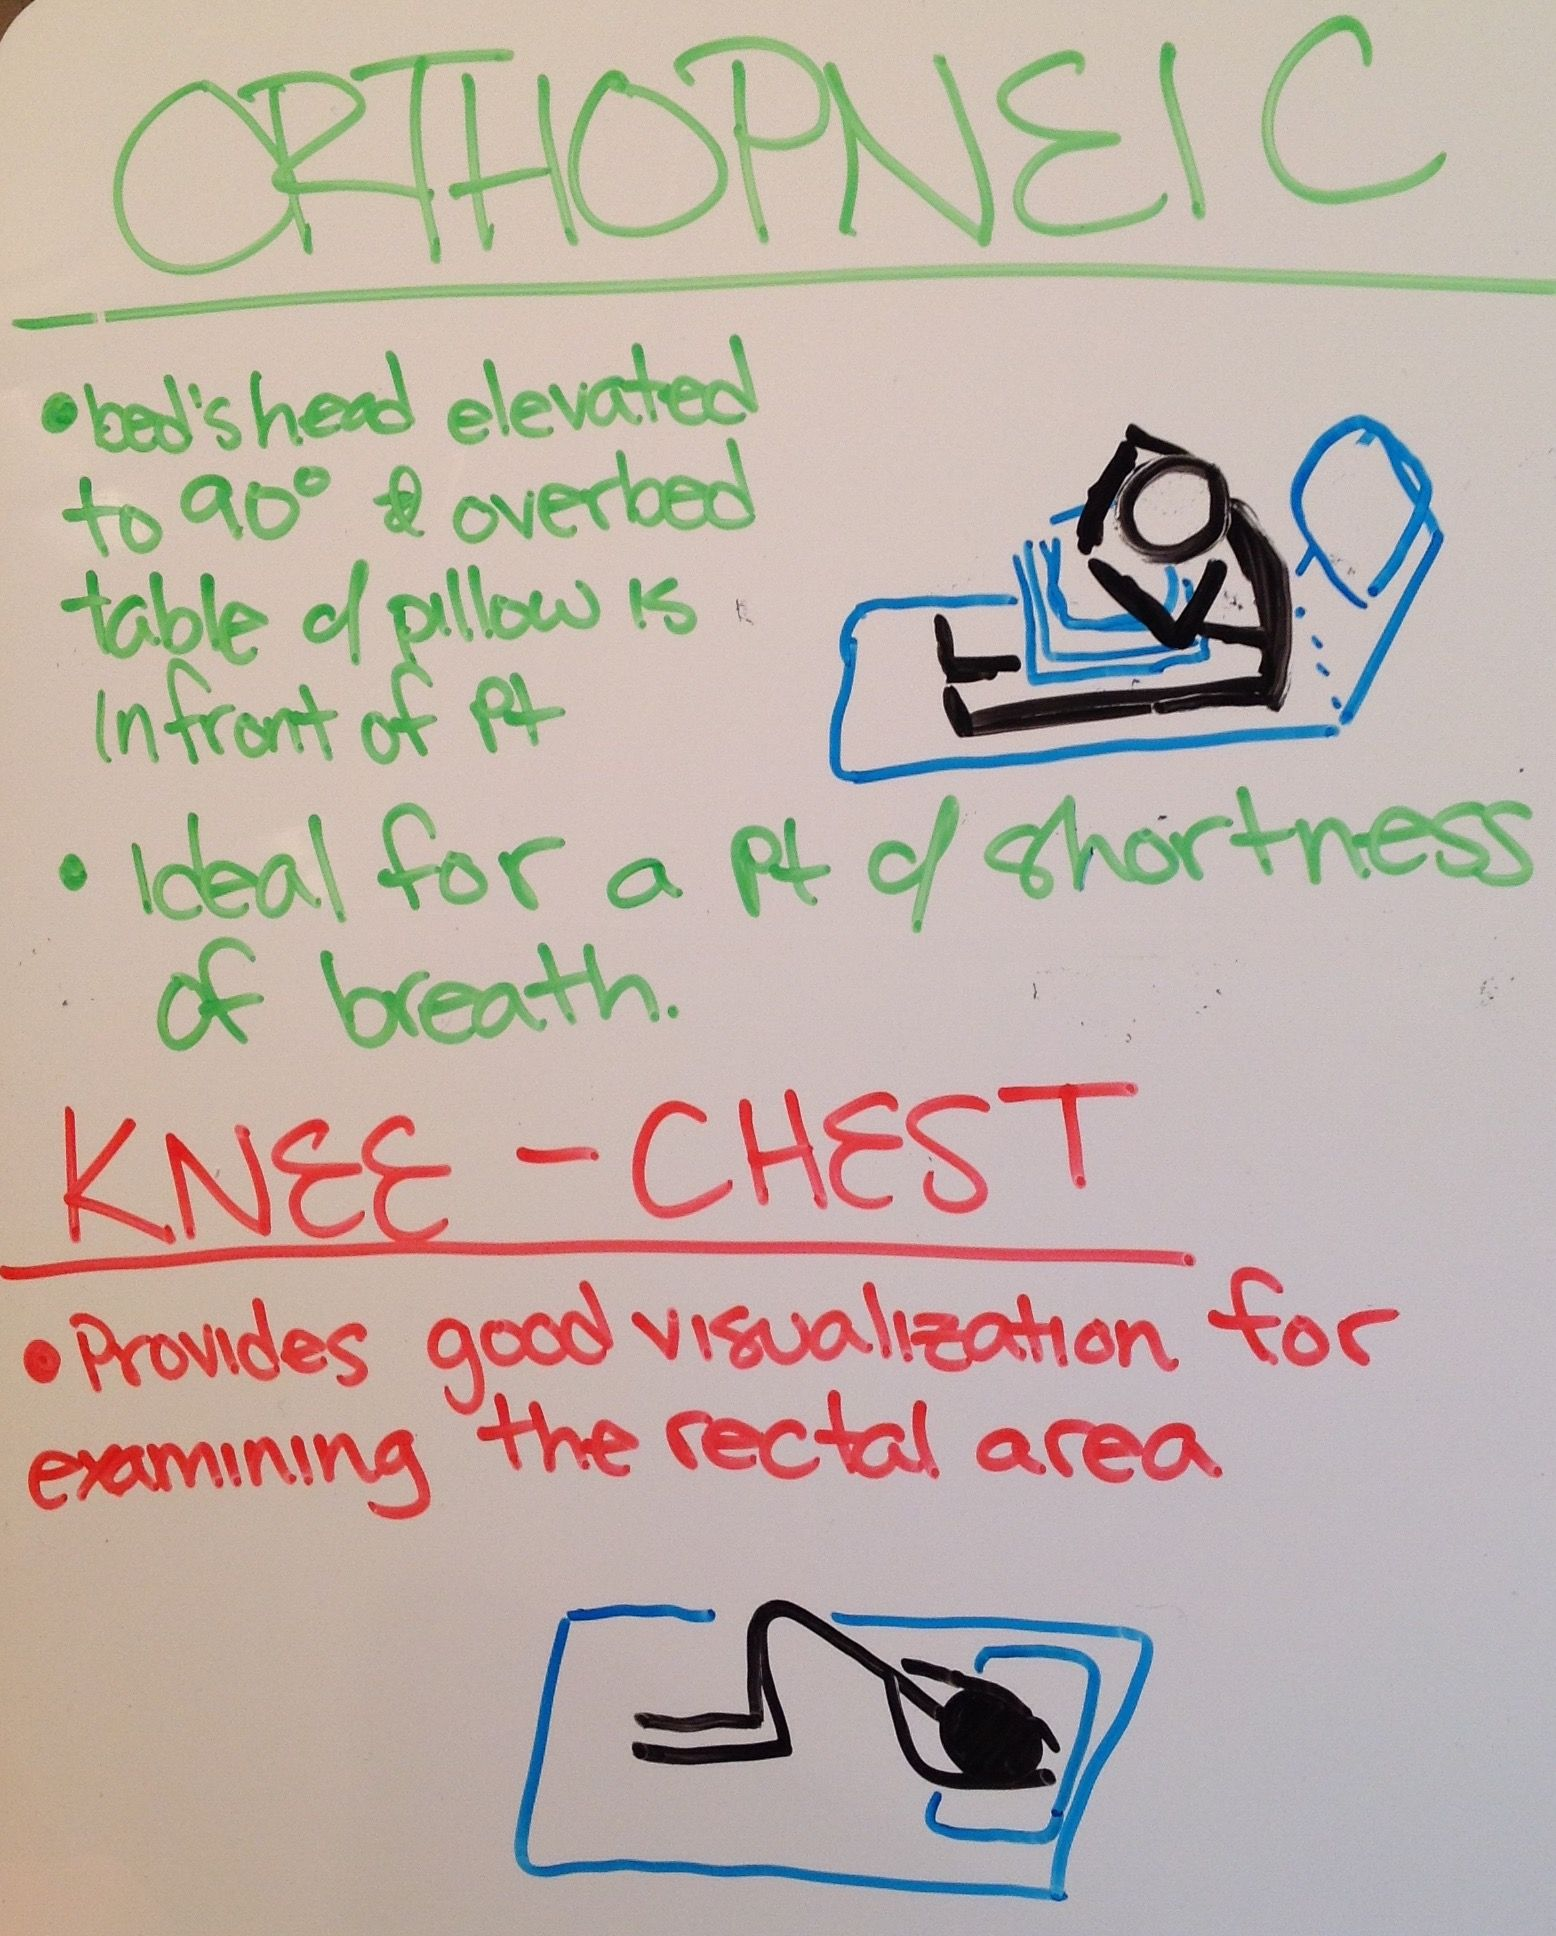 Patient positioning Orthopneic and Kneechest Nursing